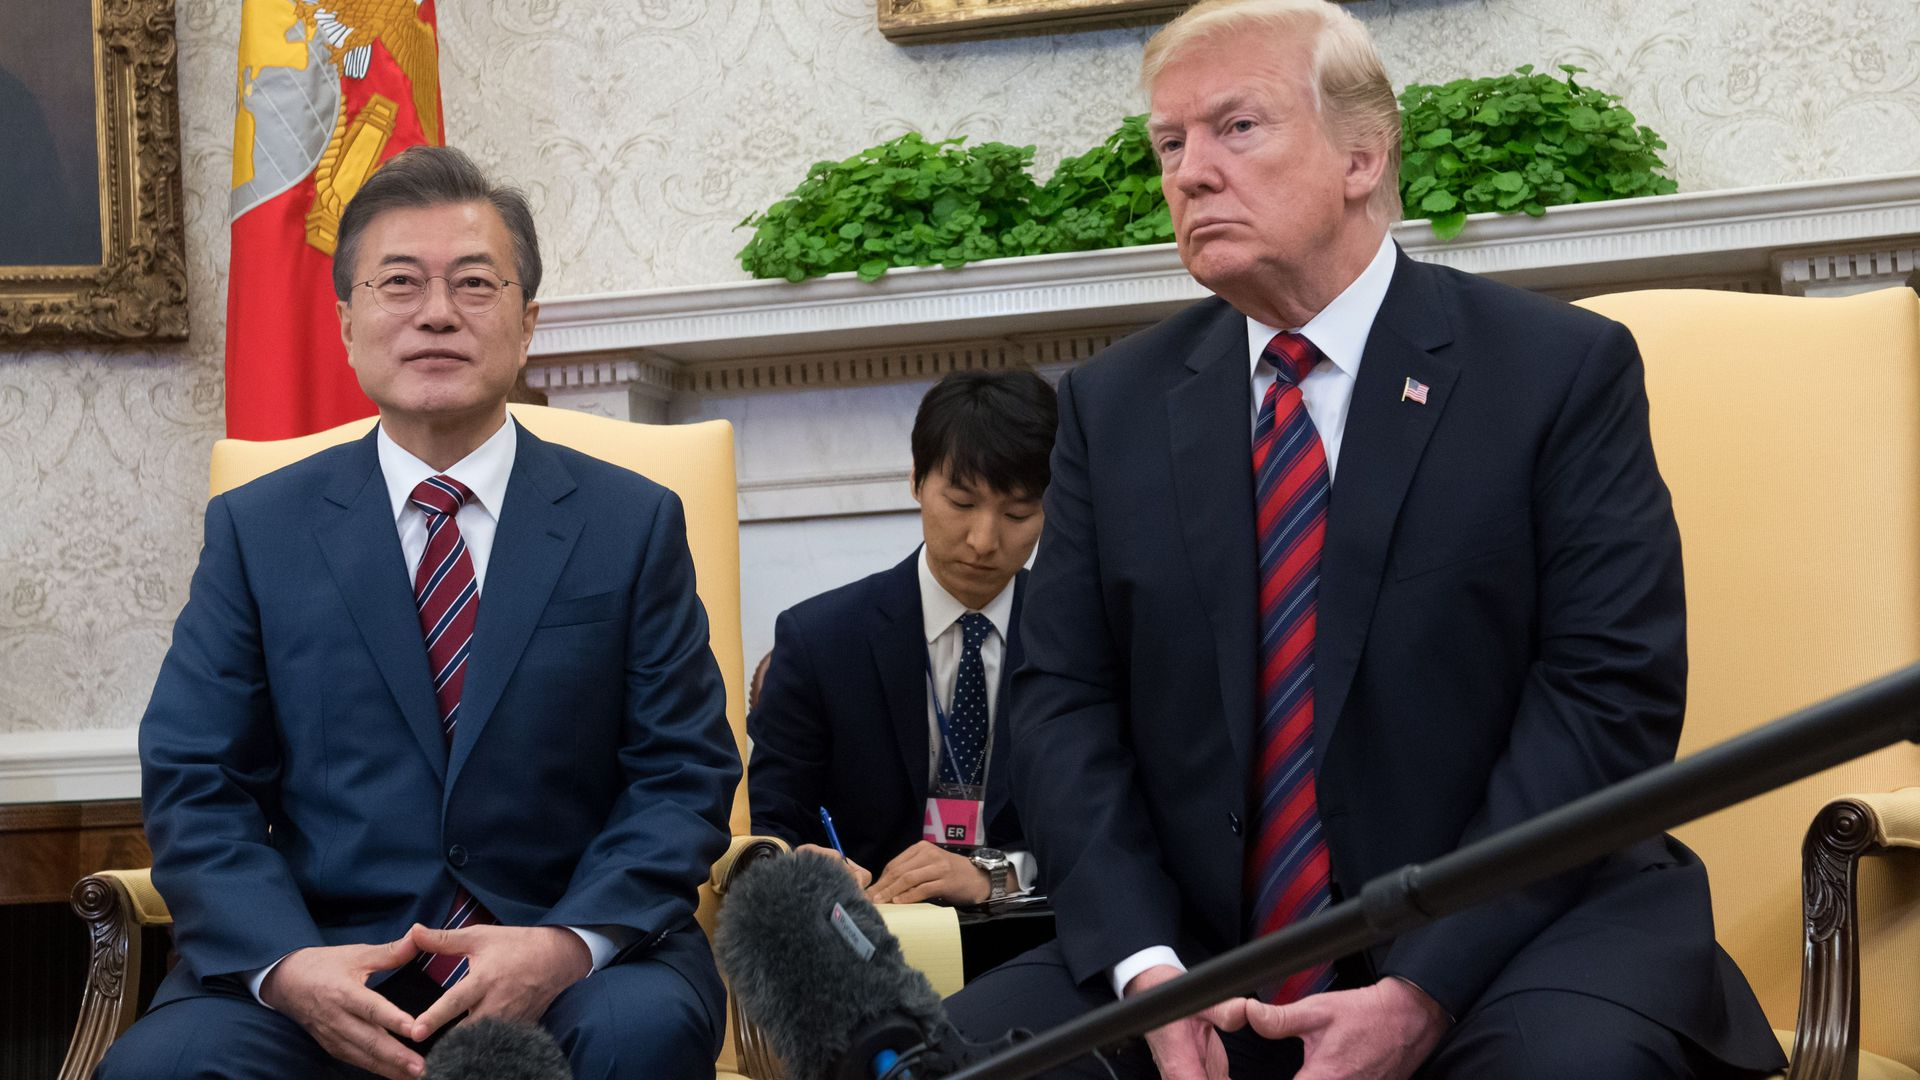 Donald Trump and Moon Jae-in